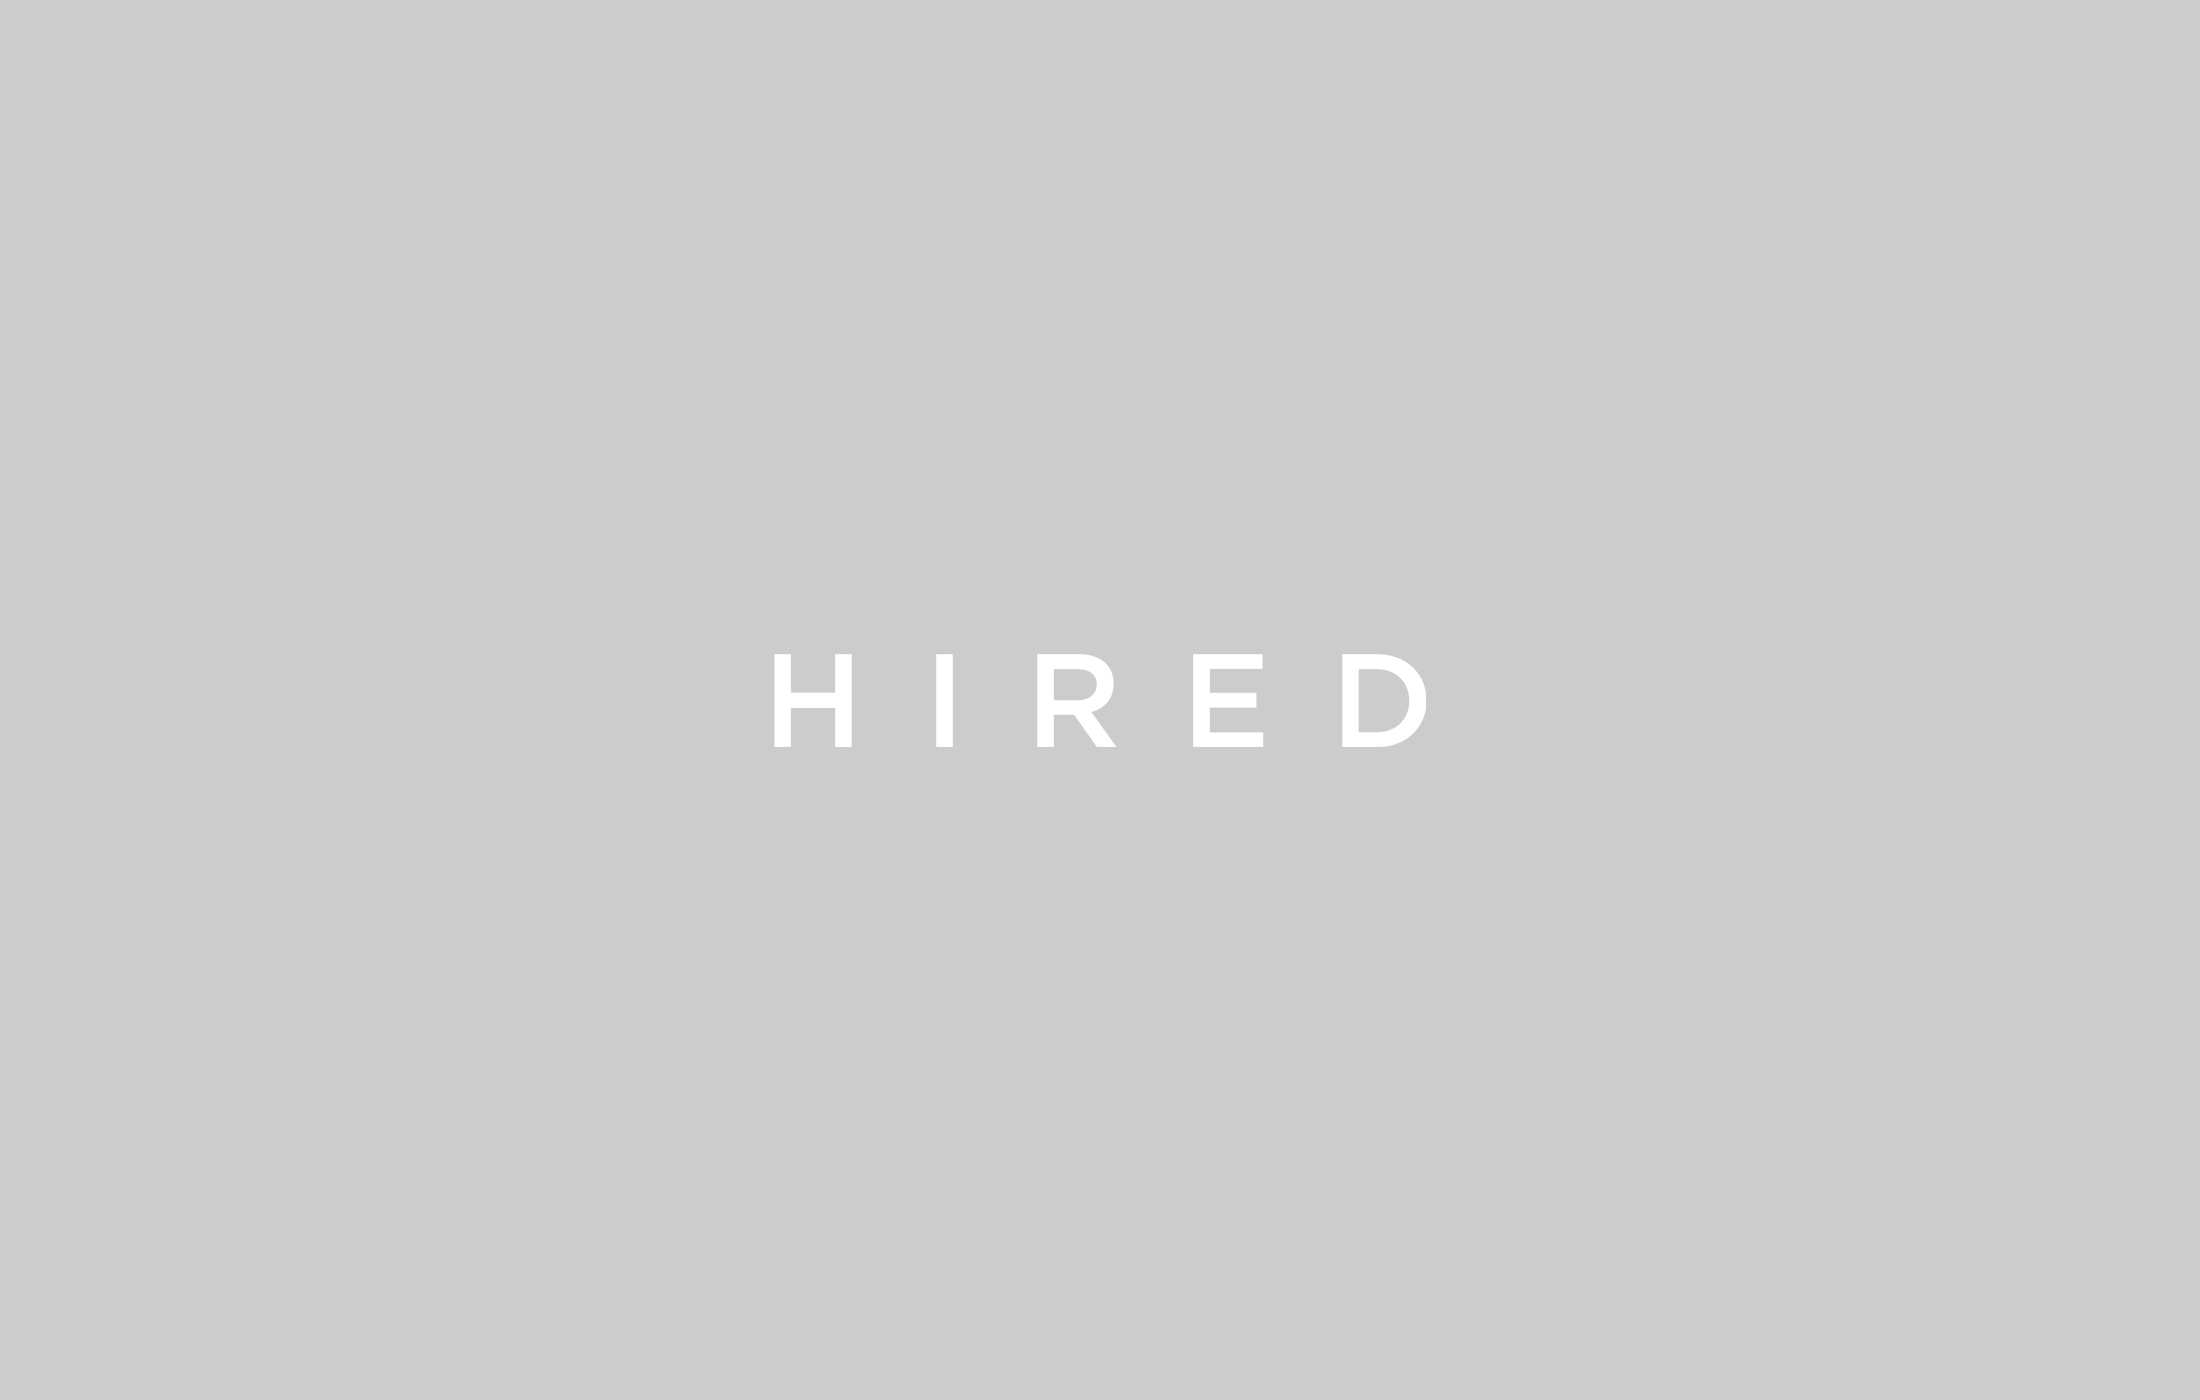 hired-nyc-asks-should-you-work-in-finance-or-tech